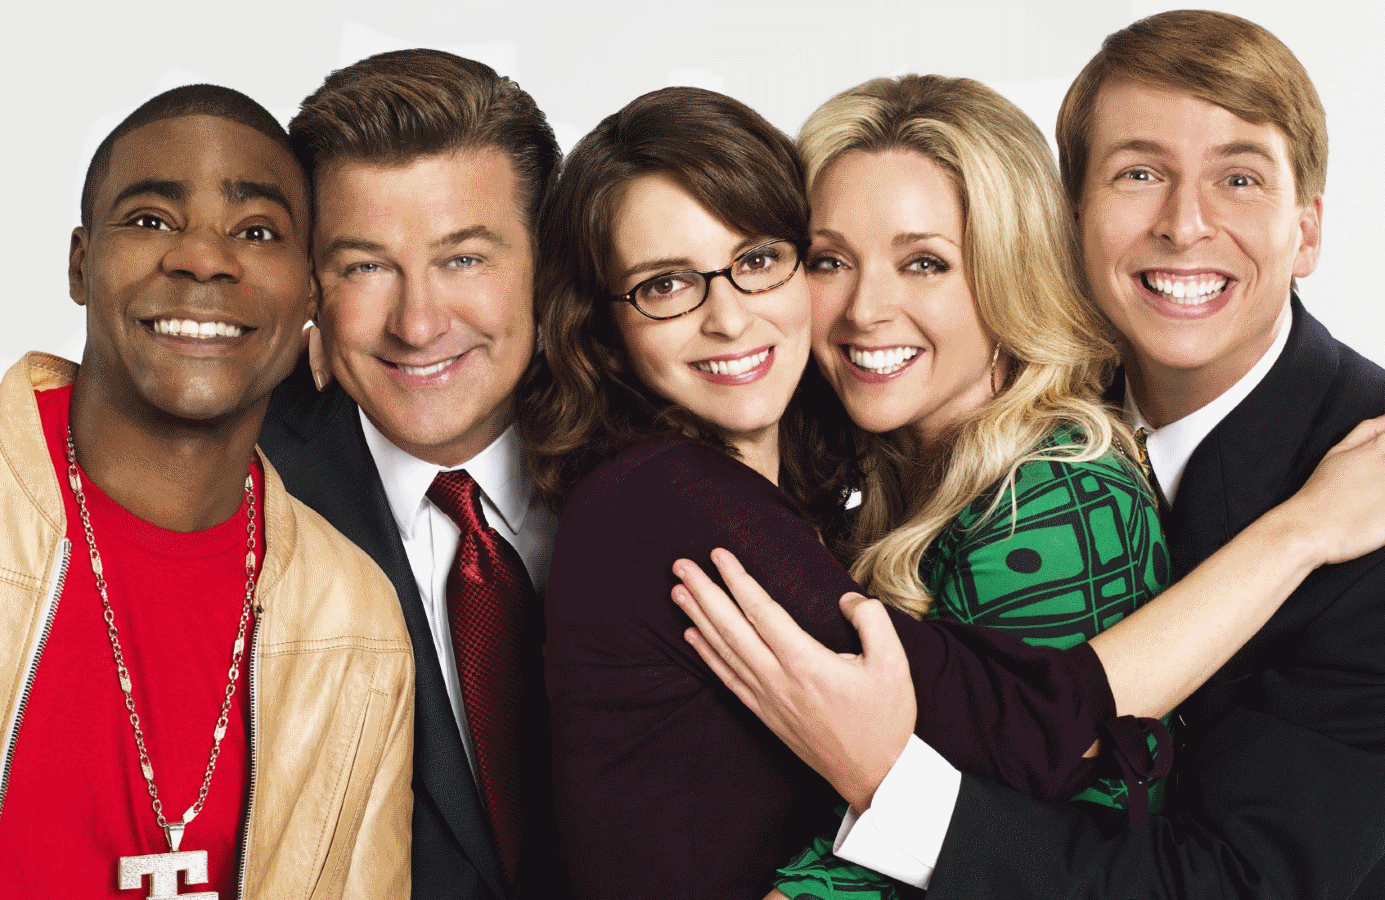 Tracy Morgan, Alec Baldwin, Tina Fey,  Jane Krakowski and Jack McBrayer revive their characters in tonight's 30 Rock: A One-Time Special. (NBC)